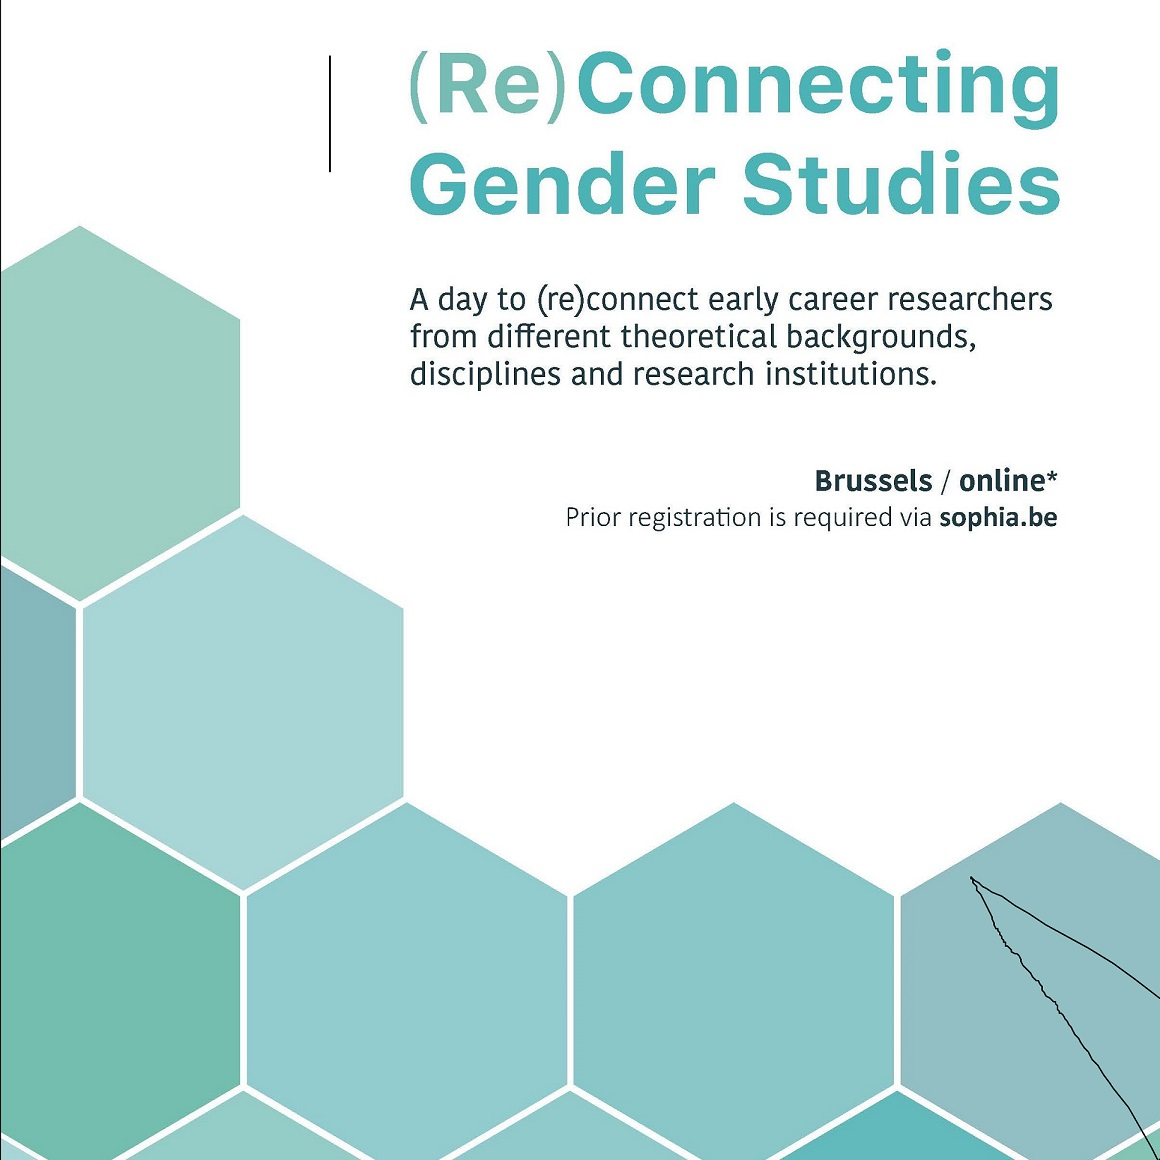 reconnecting gender studies kleiner formaat